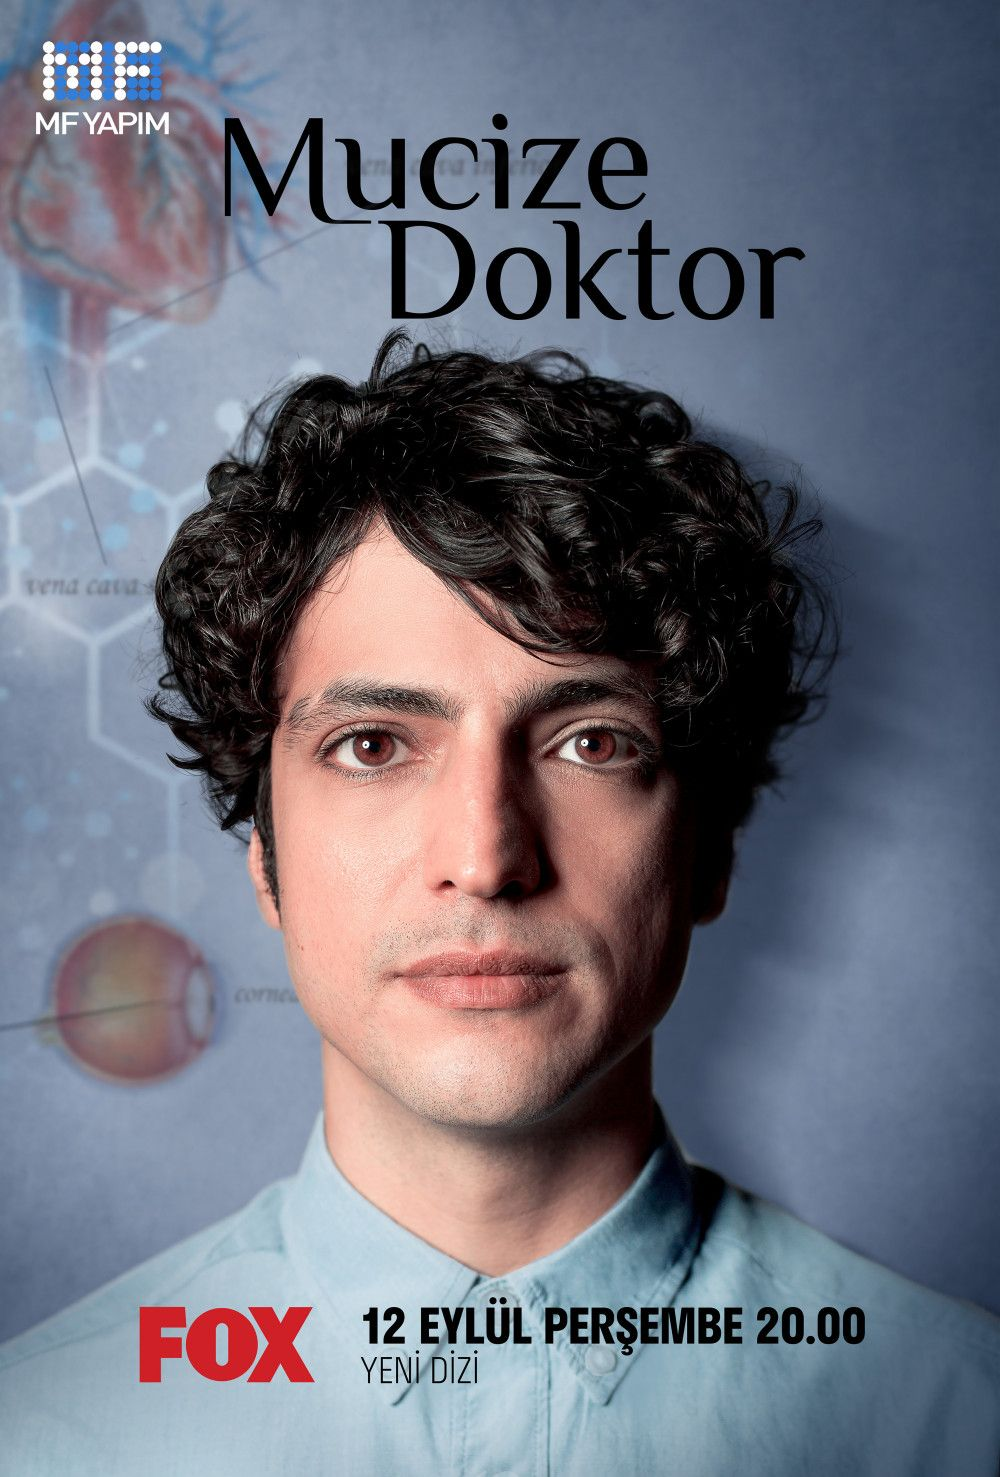 Miracle Doctor Mucize Doktor Tv Series Drama Tv Series Doctors Series Tv Series